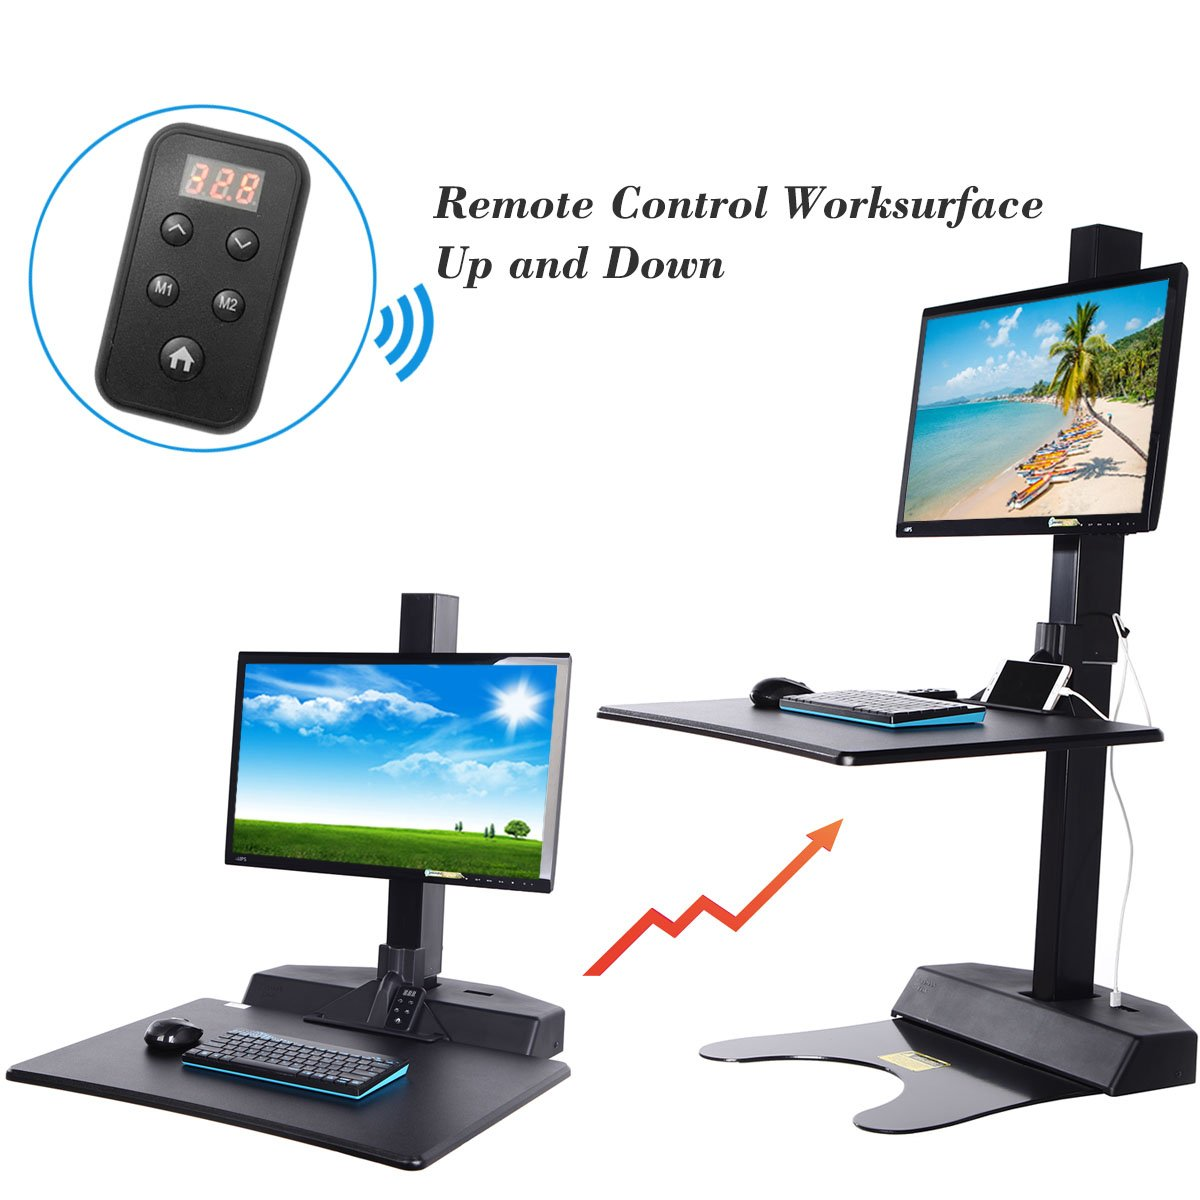 Standing Desk Riser, Freemaxdesk Electric Power Remote Control Height Adjustable Sit to Stand Desk Converter with Monitor Vesa Mount ,Worksuface(26''x21'') by freemaxdesk (Image #3)